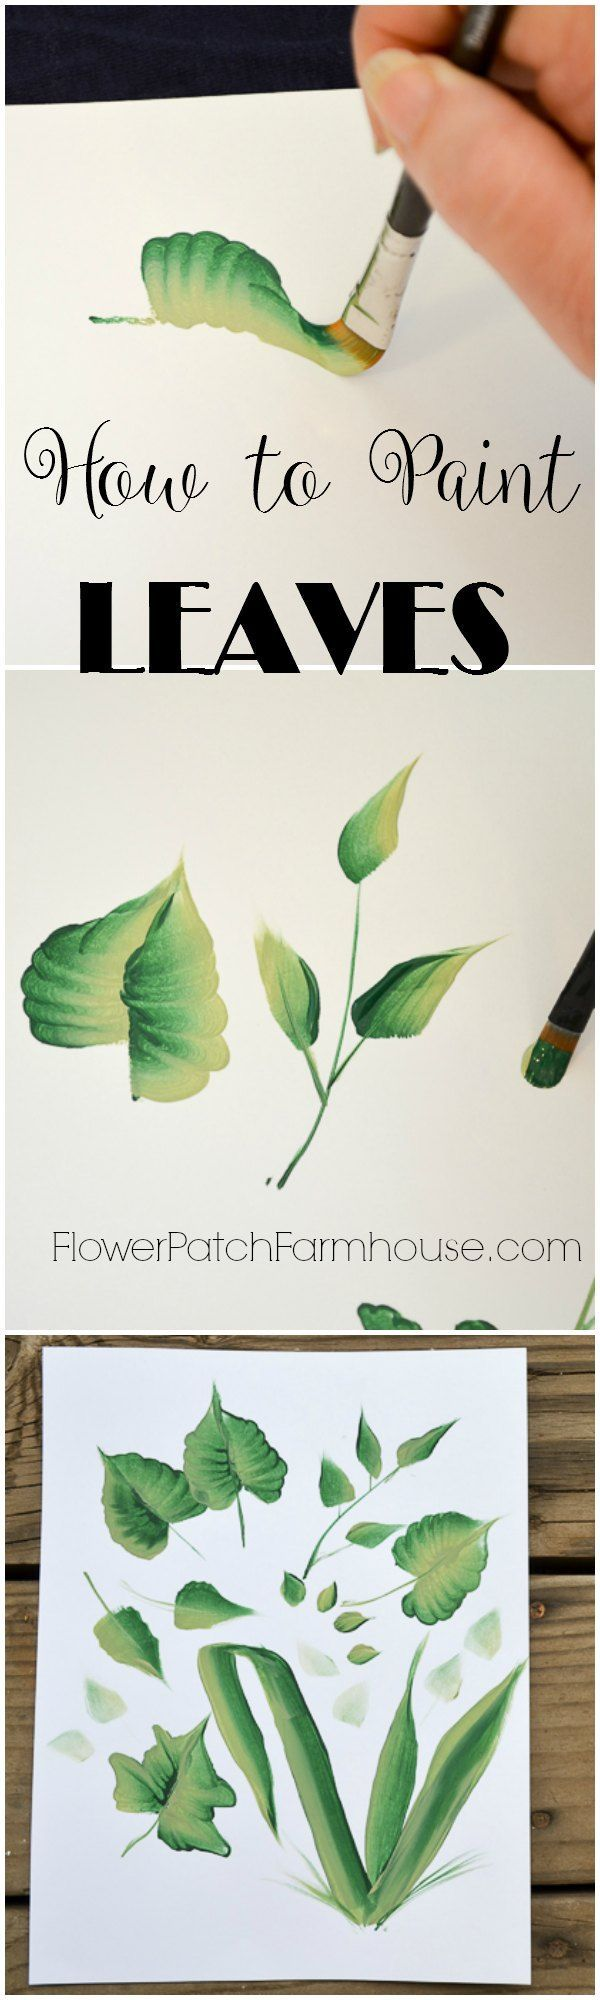 How to paint leaves one stroke at a time.  Using a flat brush and acrylic paints I show you how to paint many different types of leaves.  A video is included so you can watch how I do it.  via @FlowerpatchPam